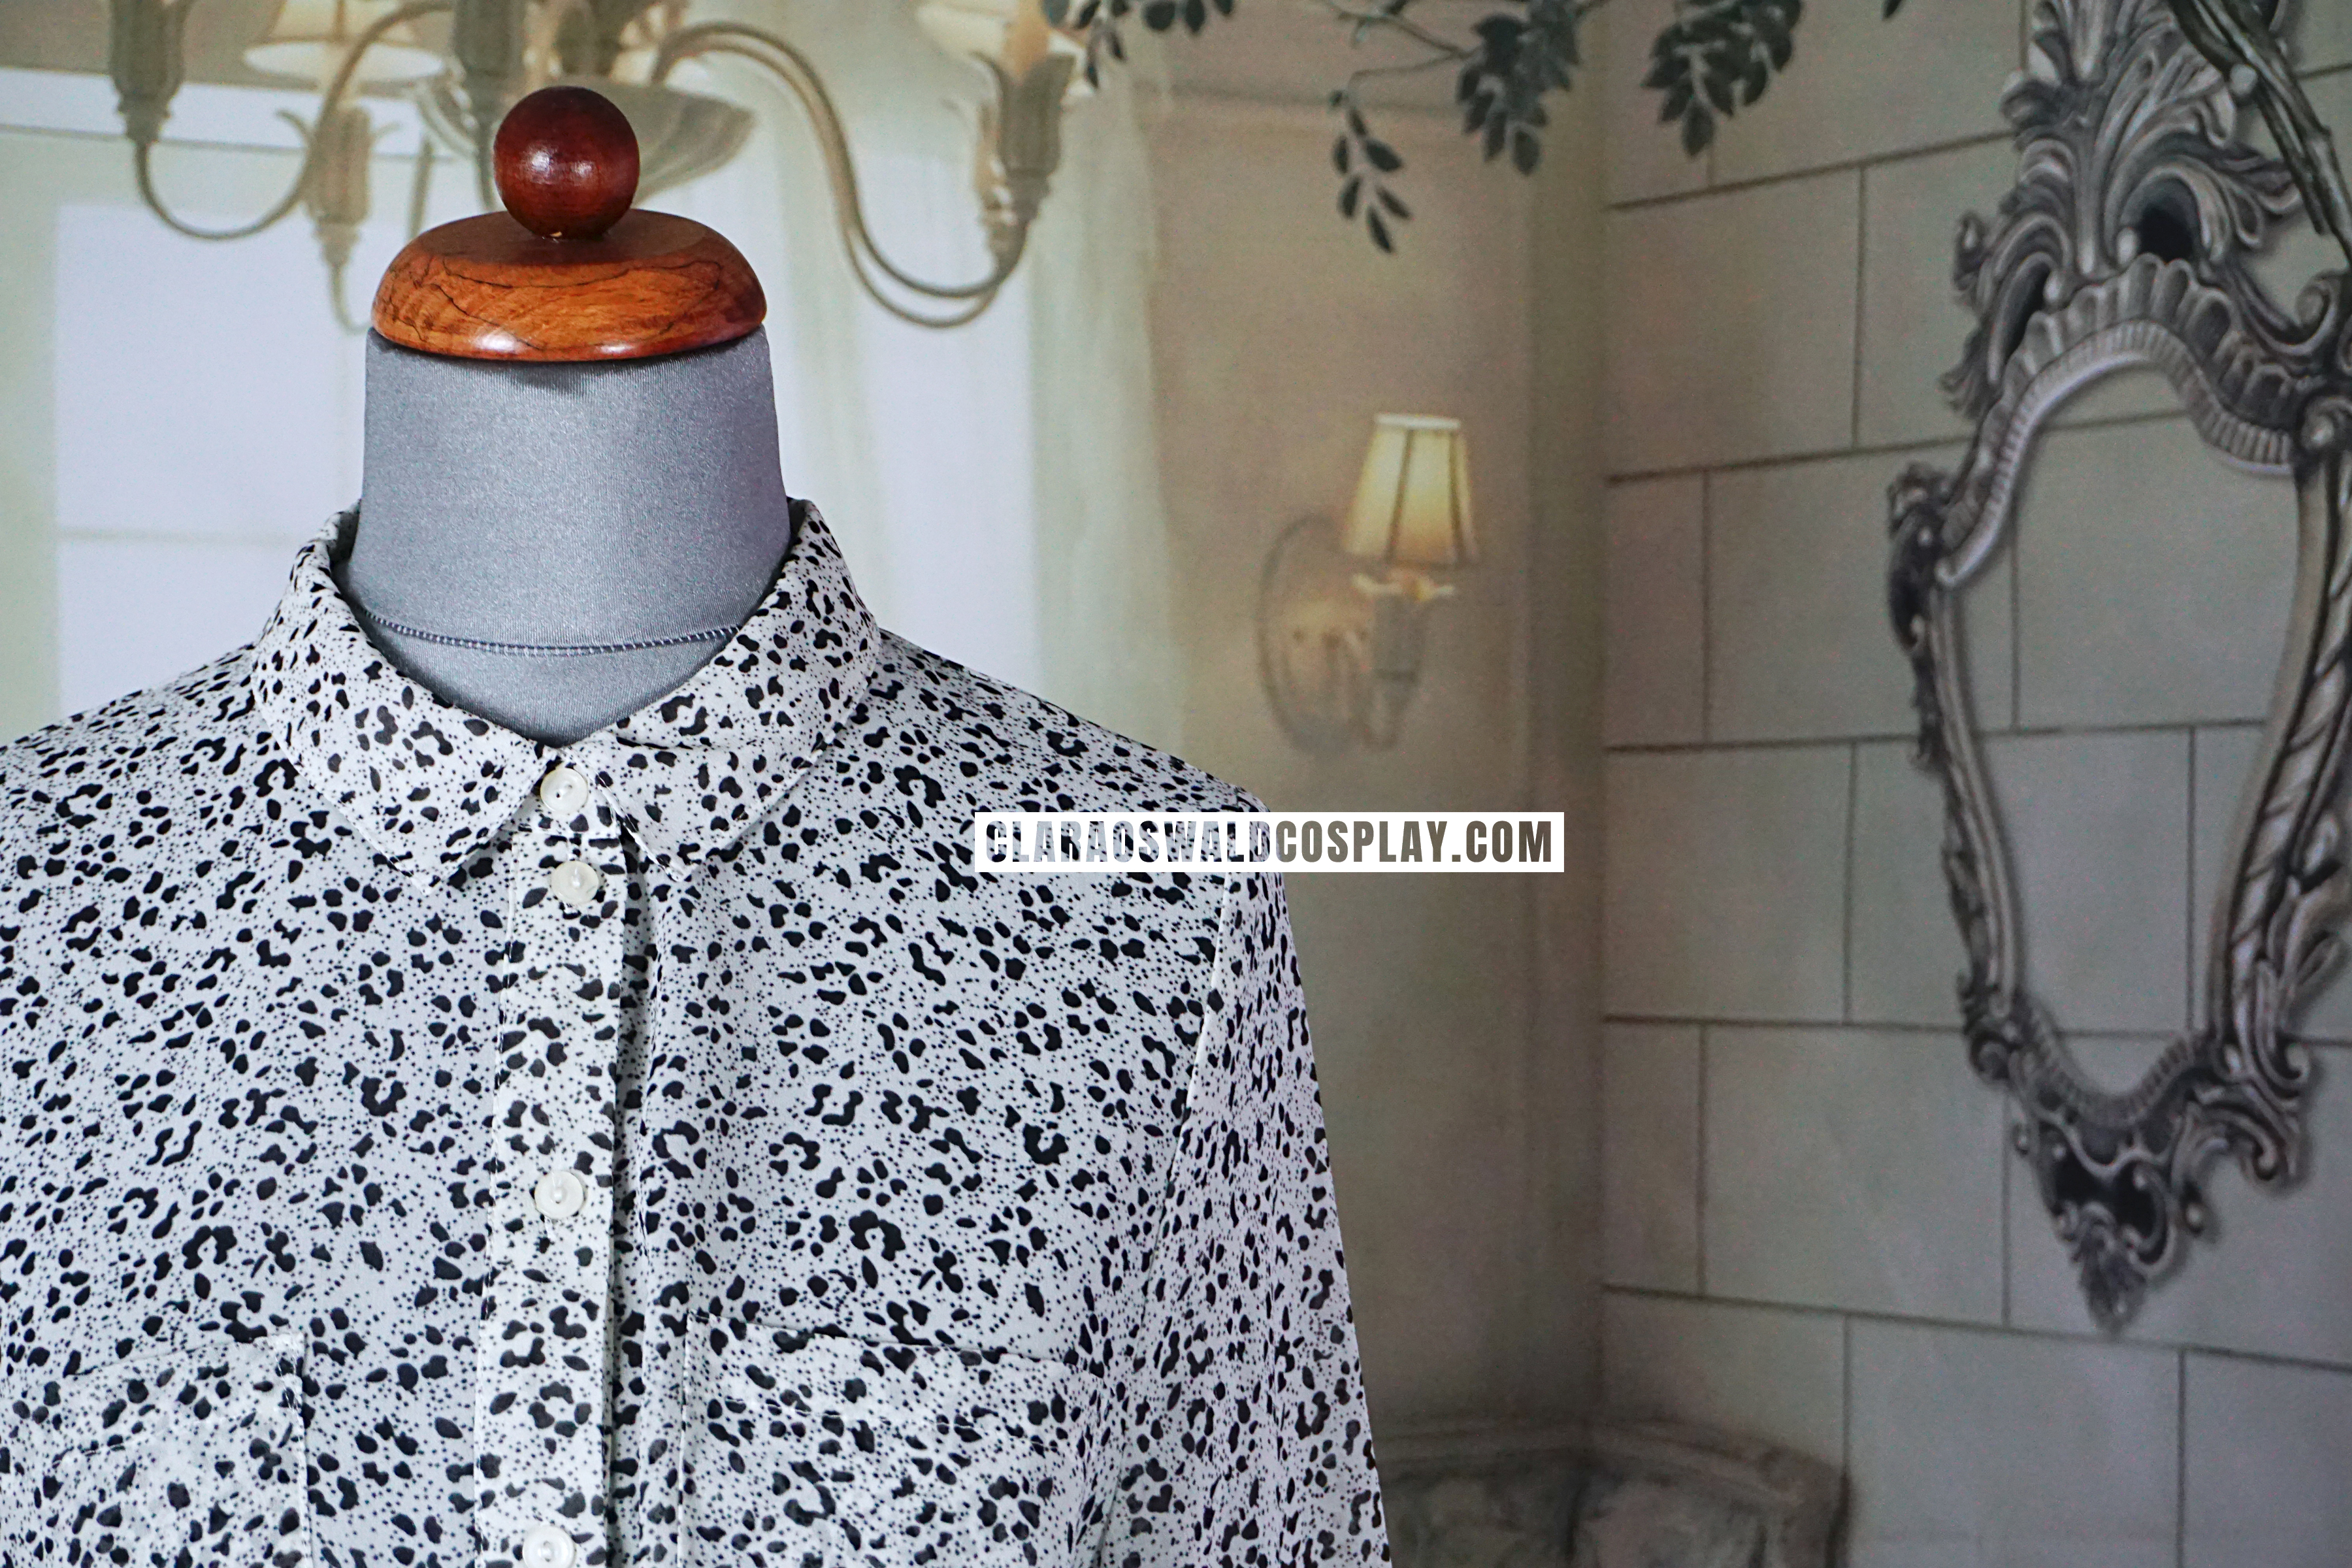 A closer look at the Urban Outfitters Sparkle & Fade Animal Print Blouse